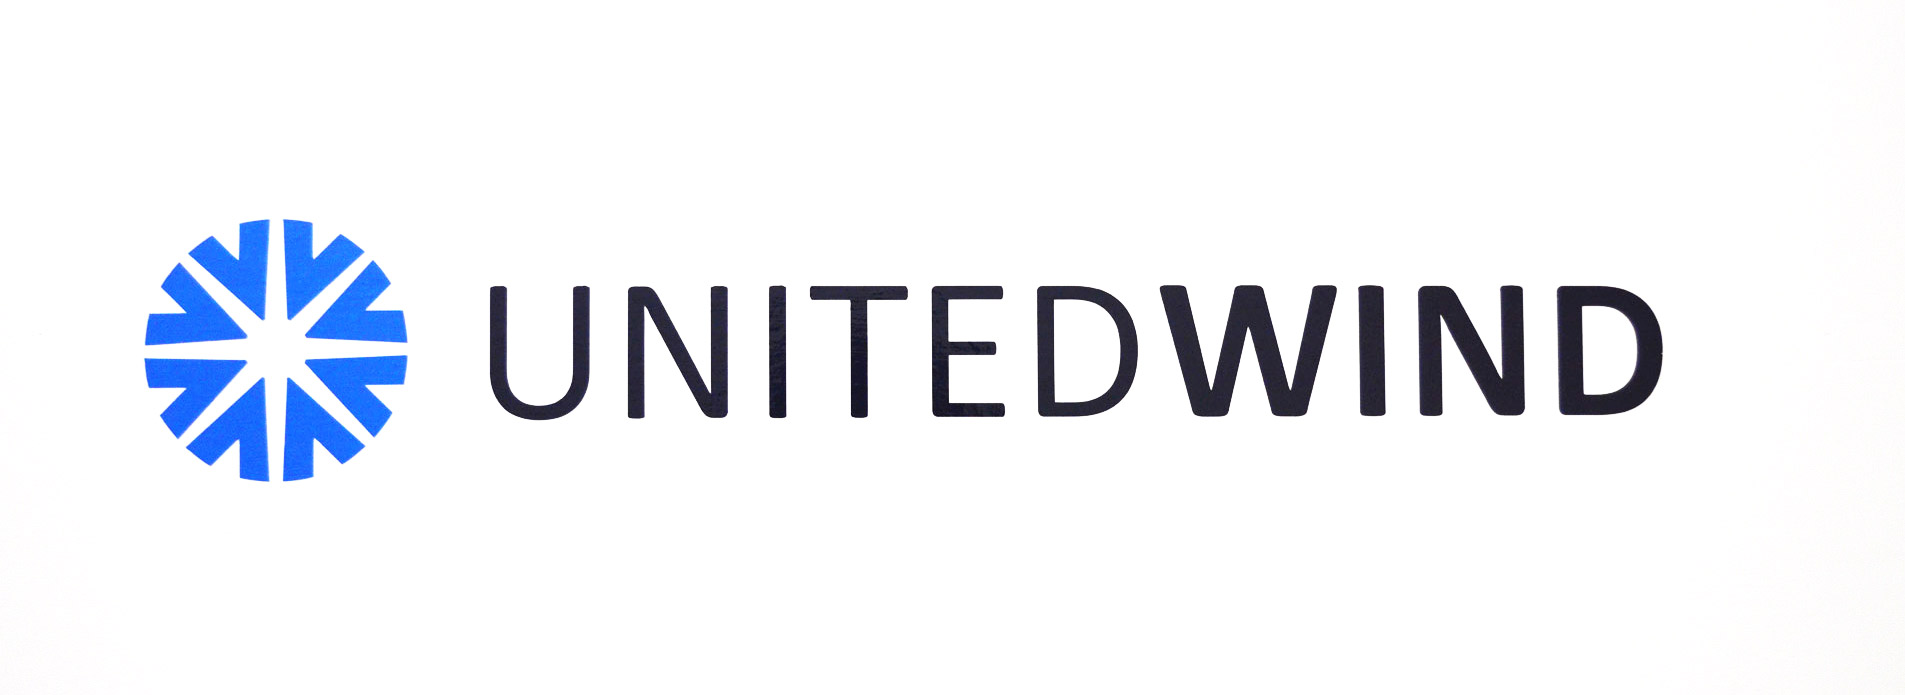 post-dumbo-united-wind-logo